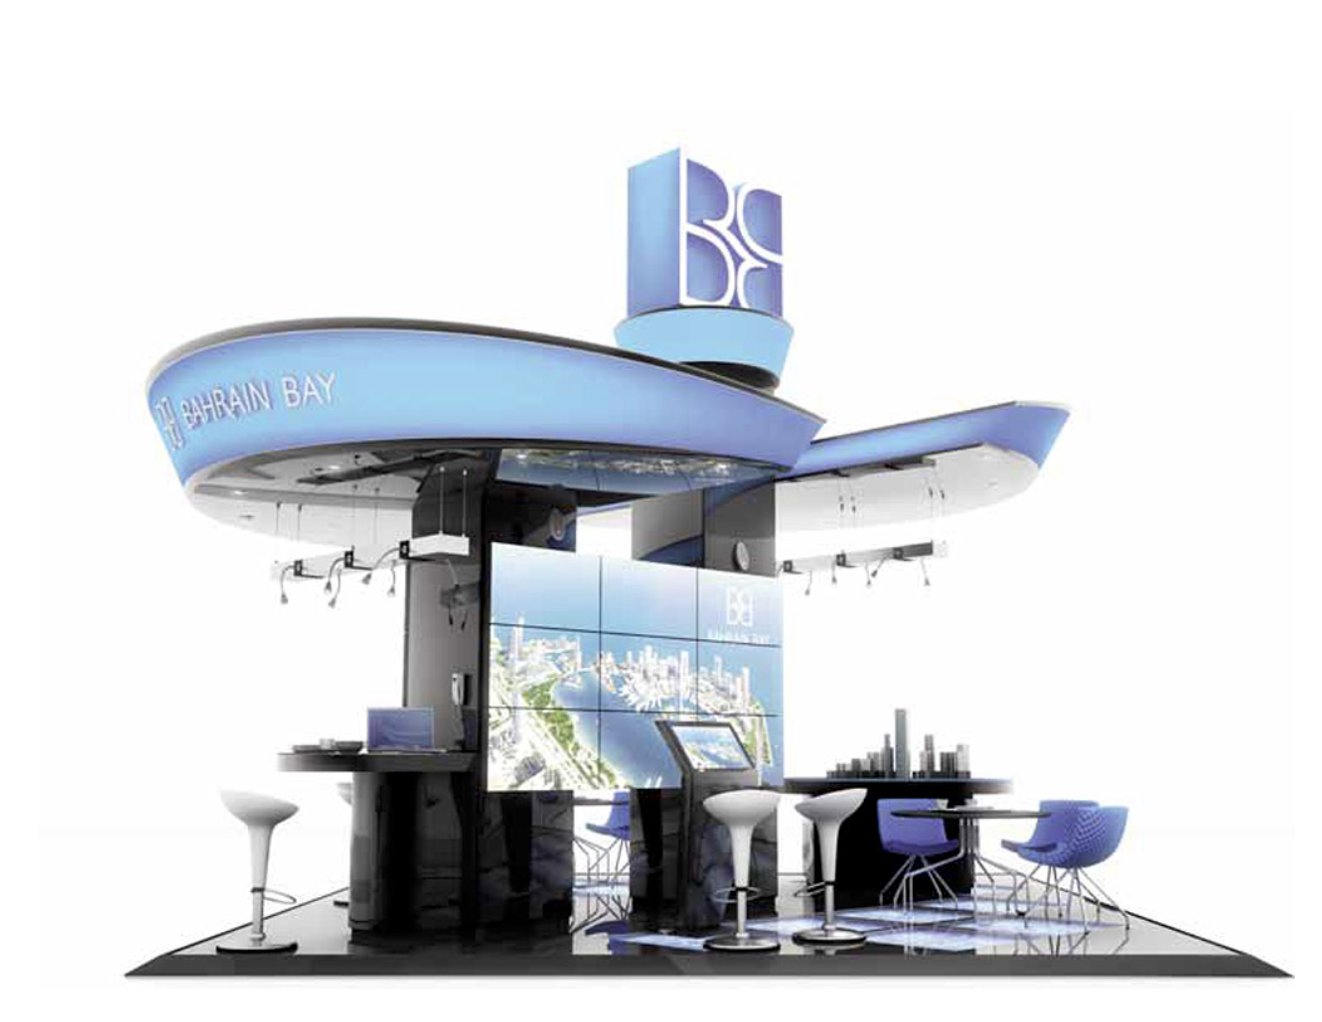 Stand Out. - We created a striking modular exhibition stand solution for Bahrain Bay with large swooping canopies to draw attention and establish a high sense of quality for the space. Large video wall installation provided the ultimate platform for the corporate video we produced.